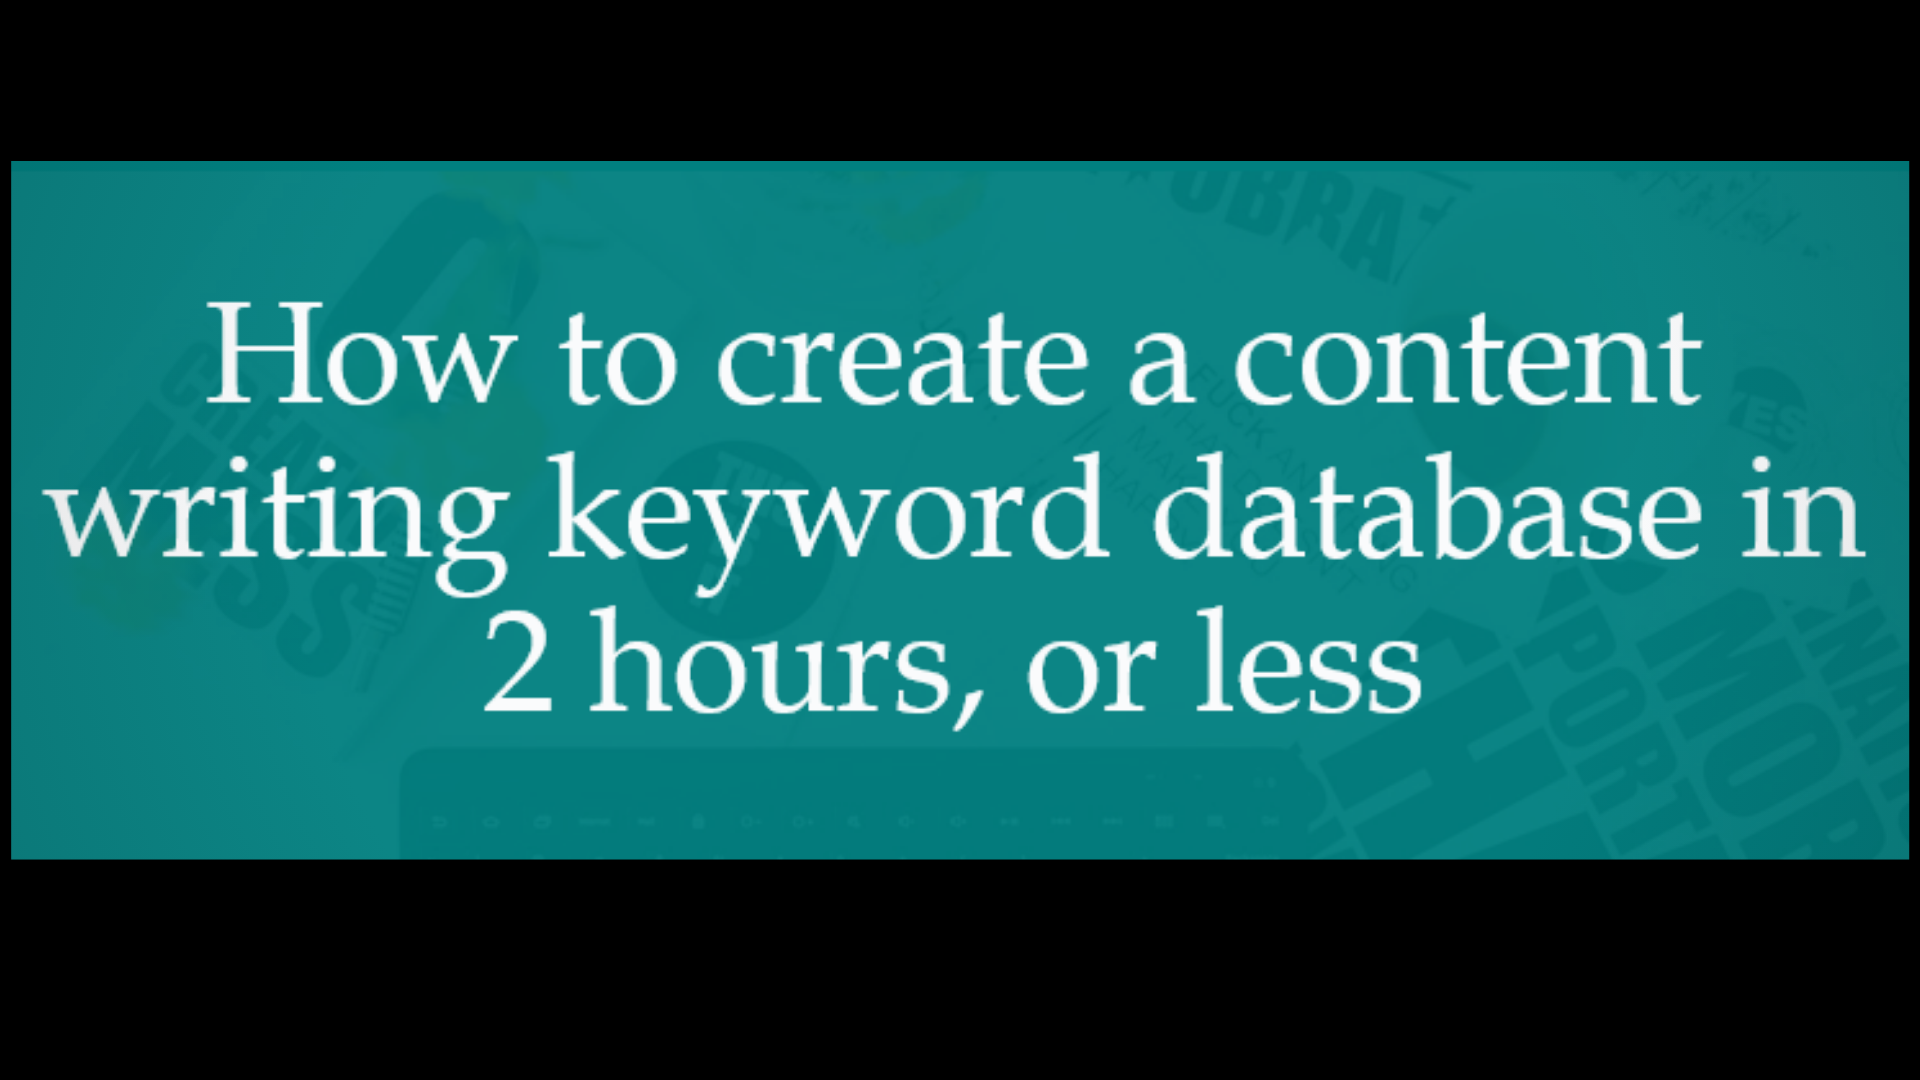 How to create a content writing keyword database in 2 hours